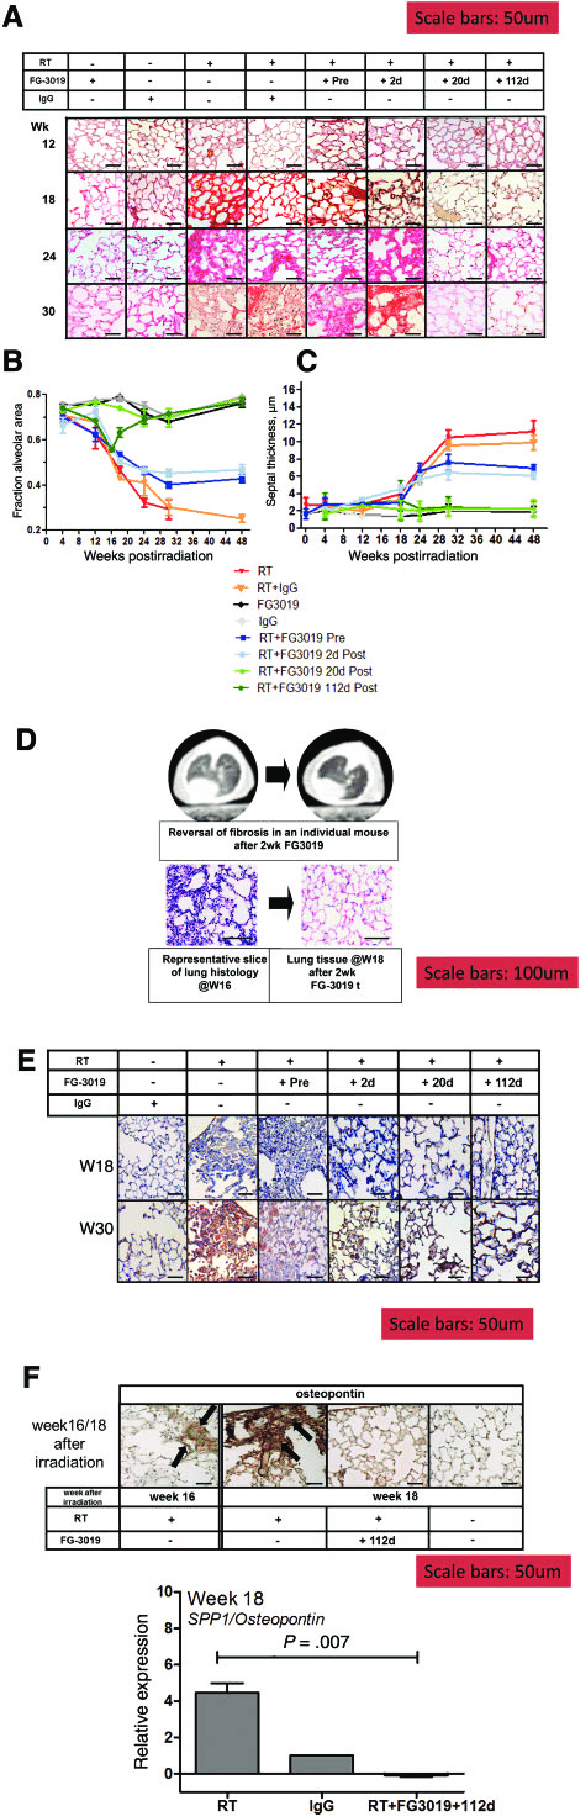 medium resolution of pulmonary tissue remodeling after irradiation and connective tissue growth factor blockade a sirius red